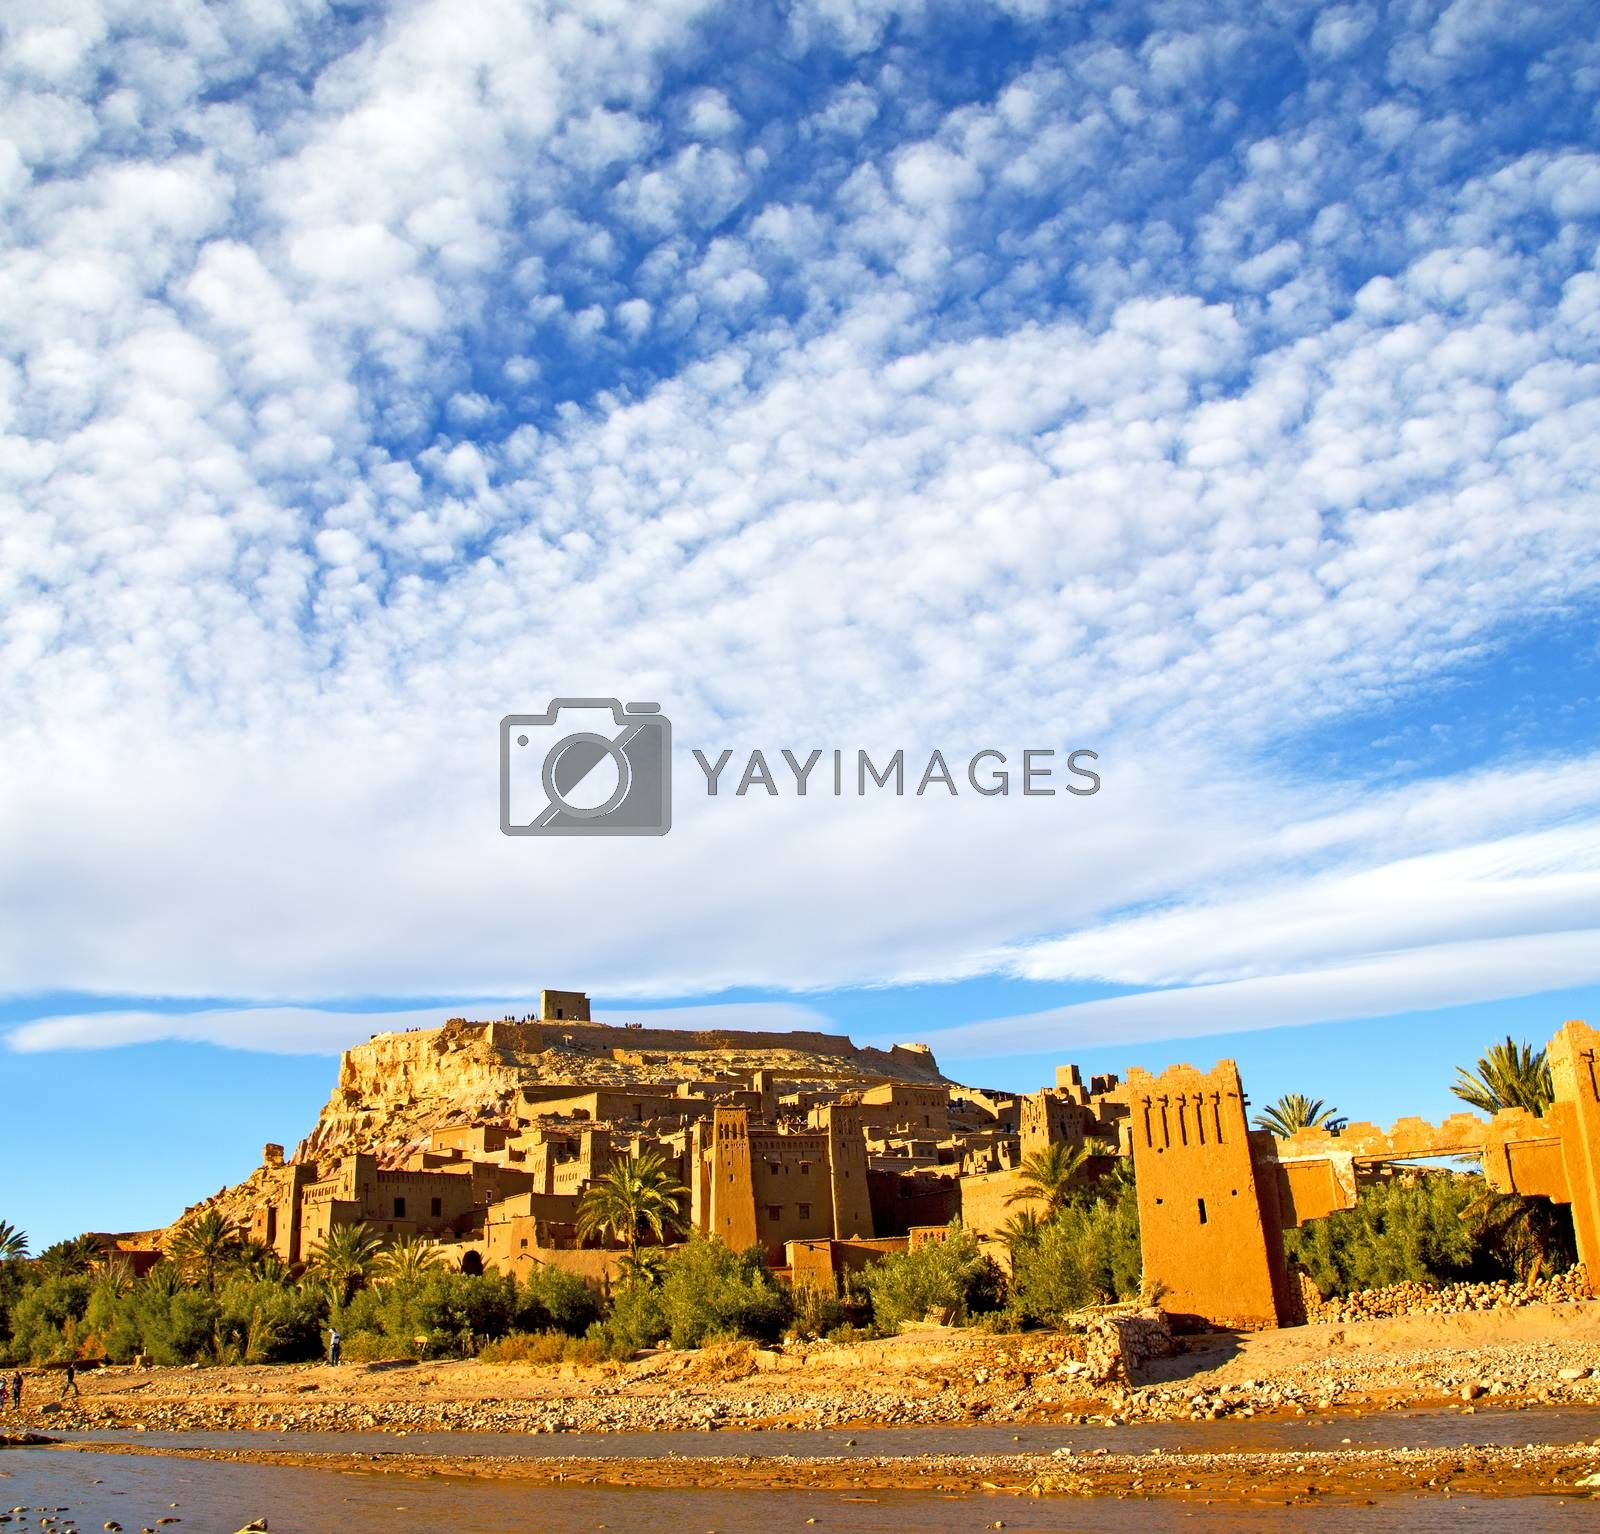 africa in morocco the old contruction and the historical village by lkpro